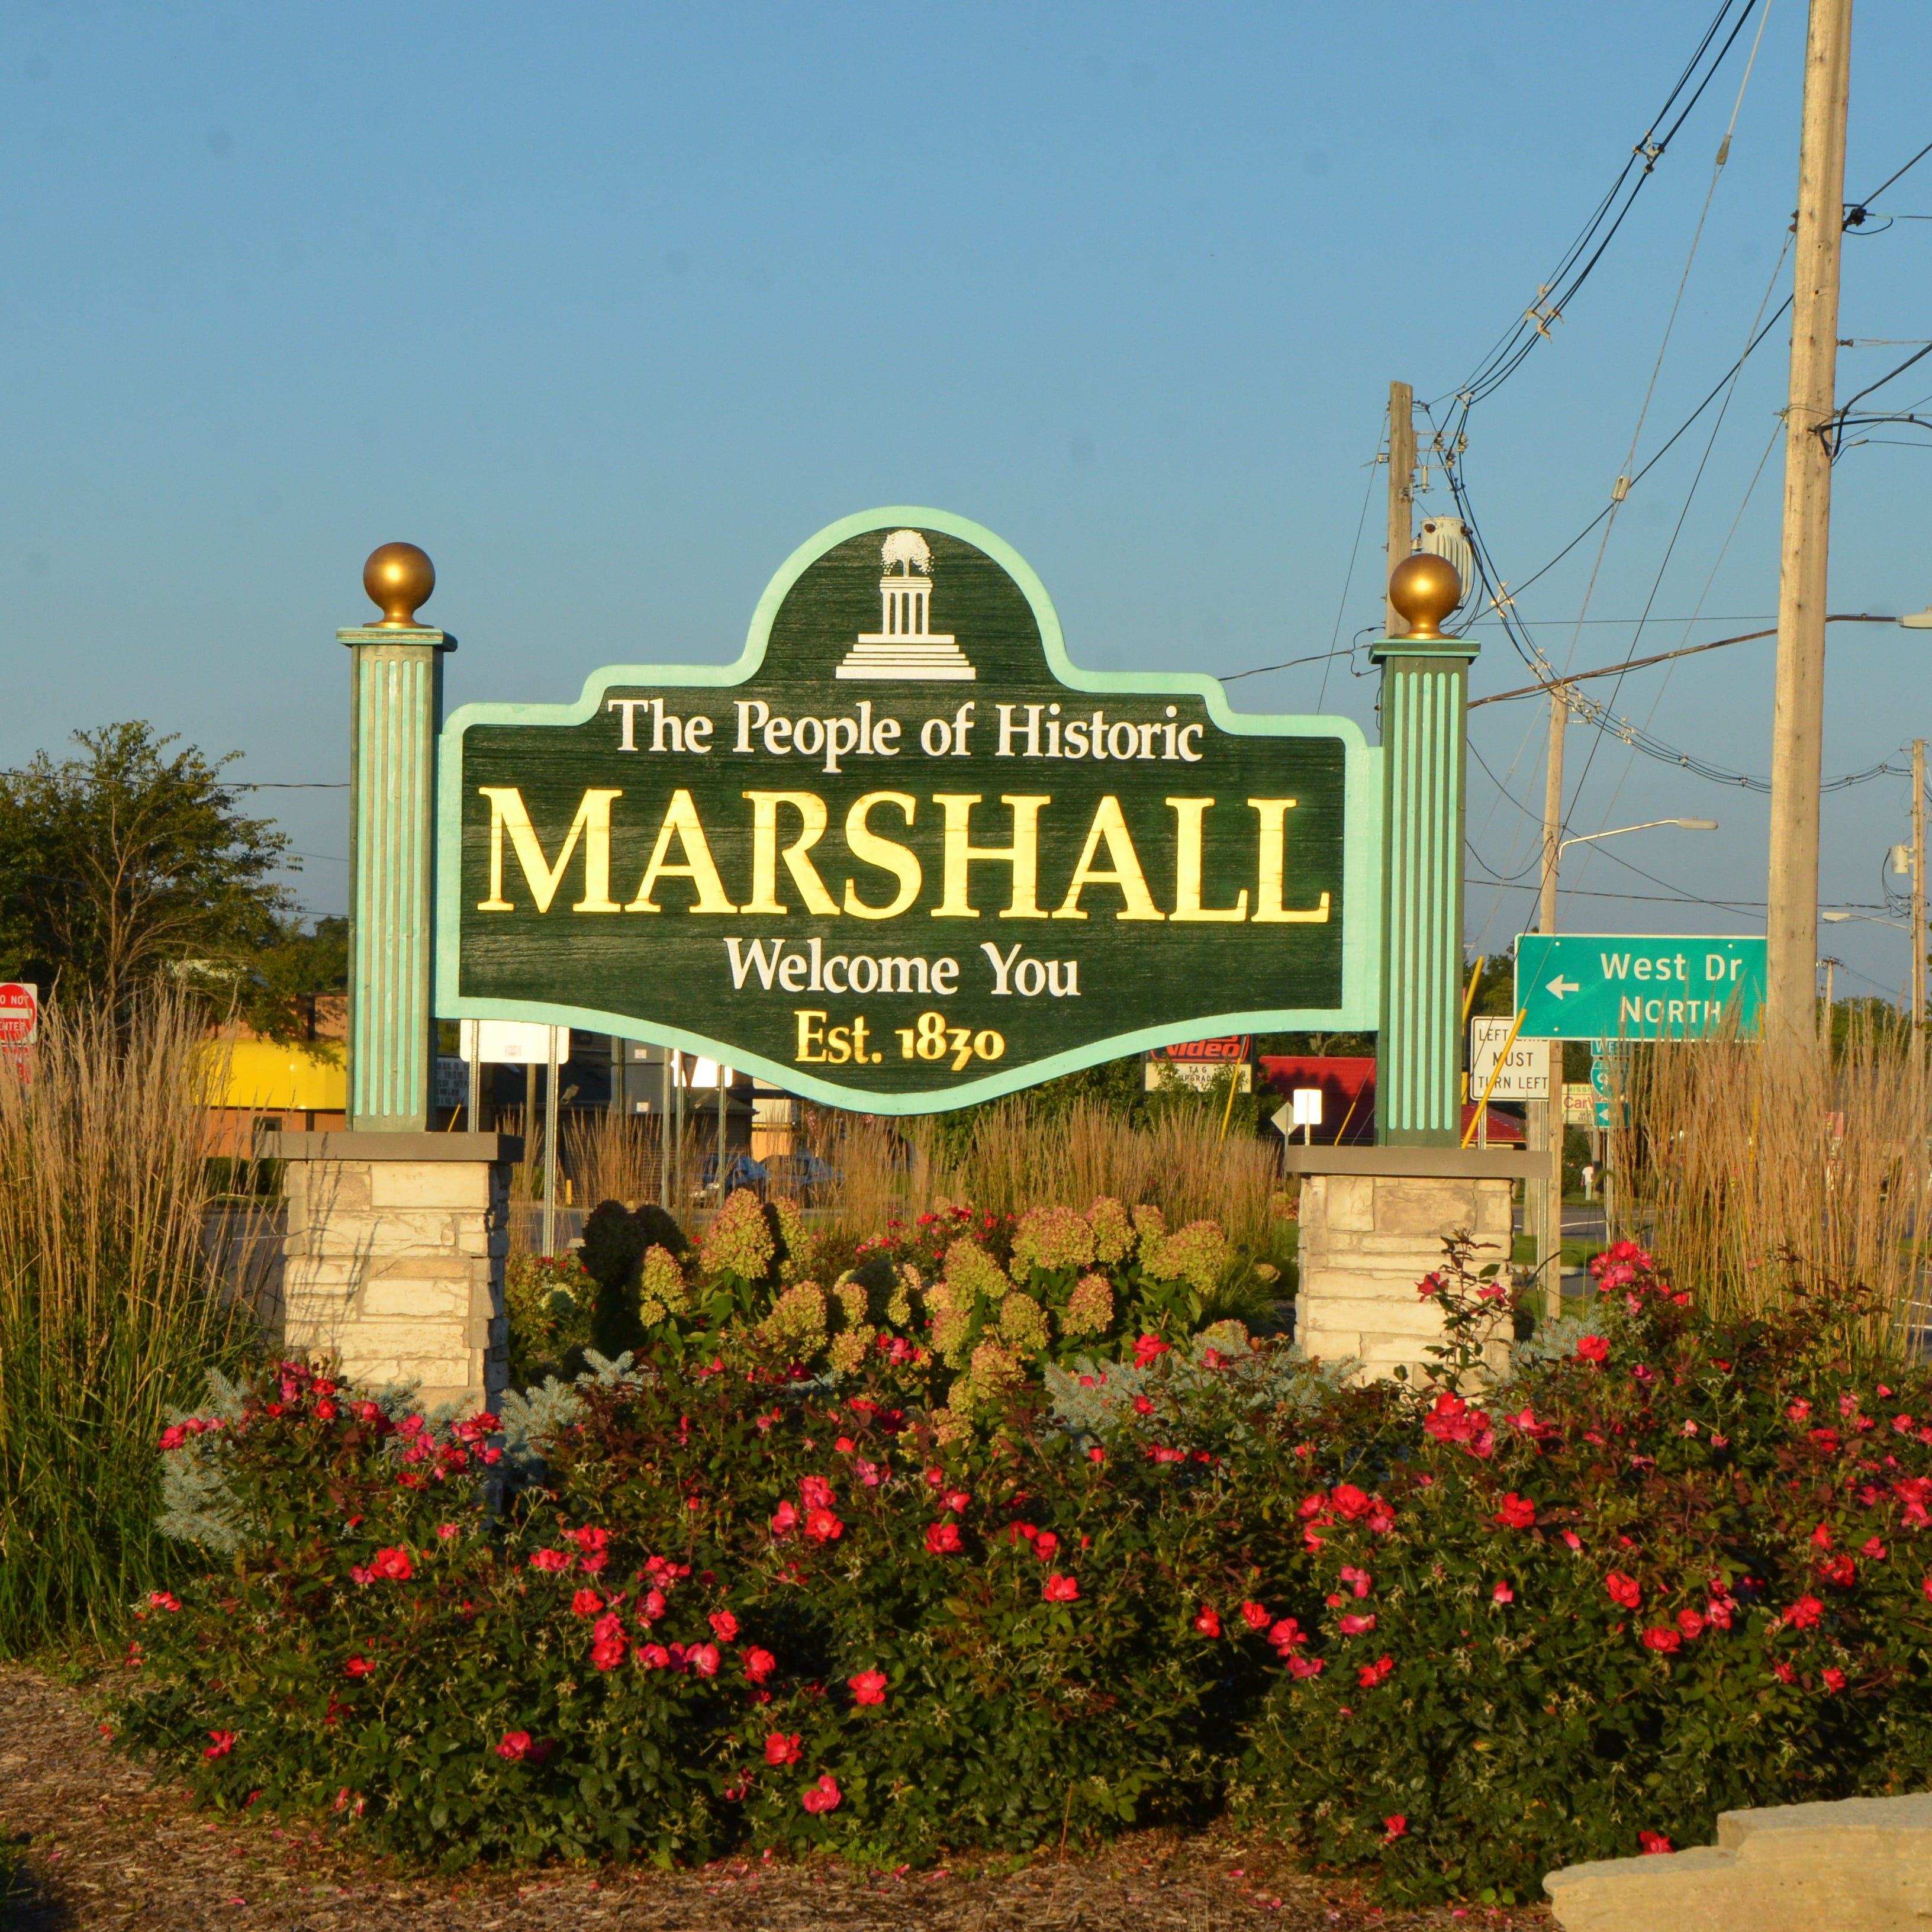 Marshall, Michigan: The town that inspired 'The House with a Clock in Its Walls'